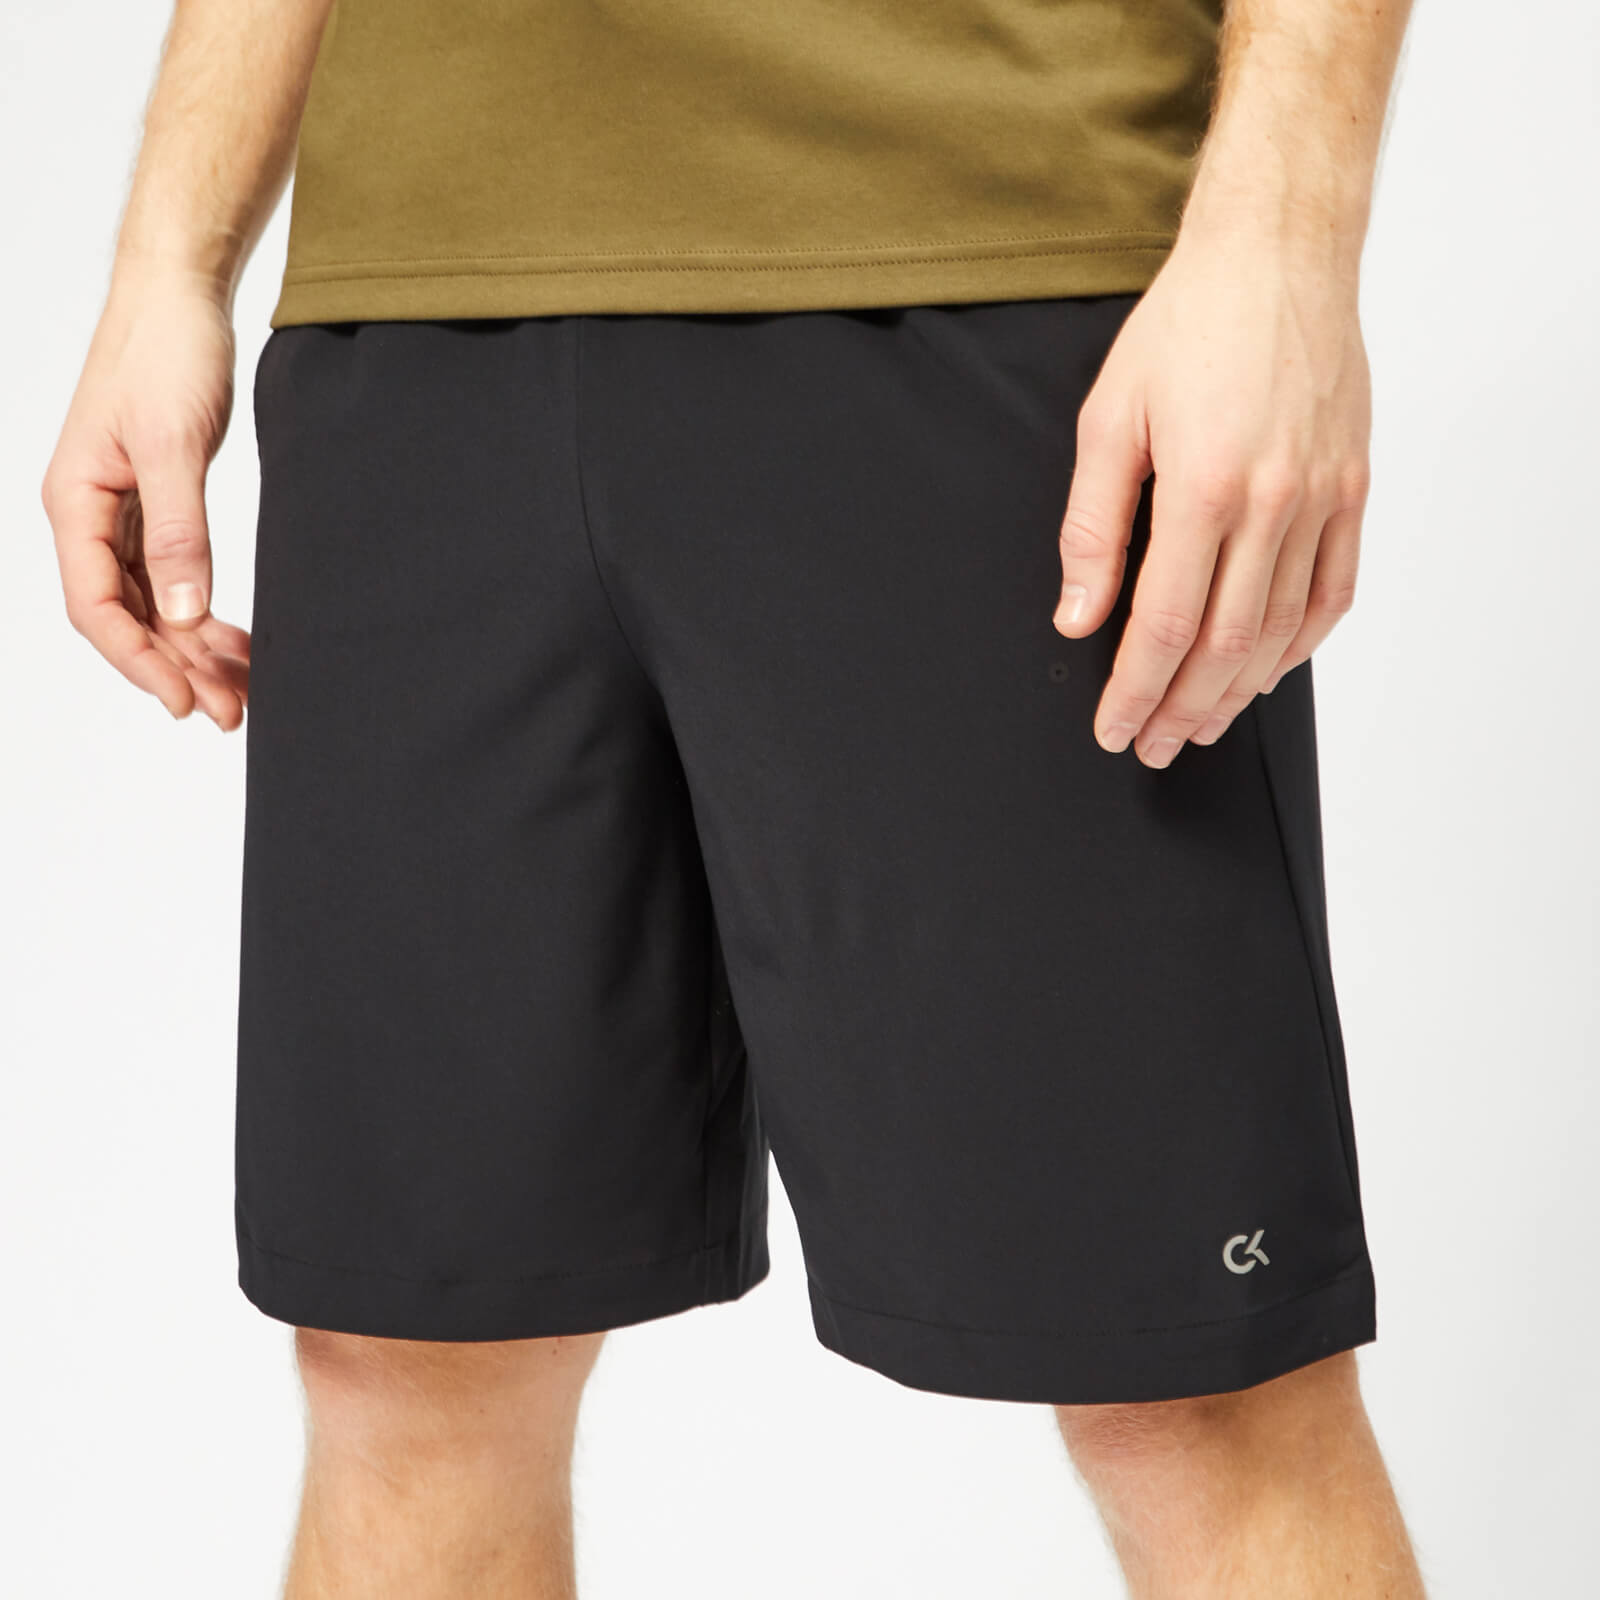 ef9ace49c Calvin Klein Performance Men's Woven Shorts - CK Black